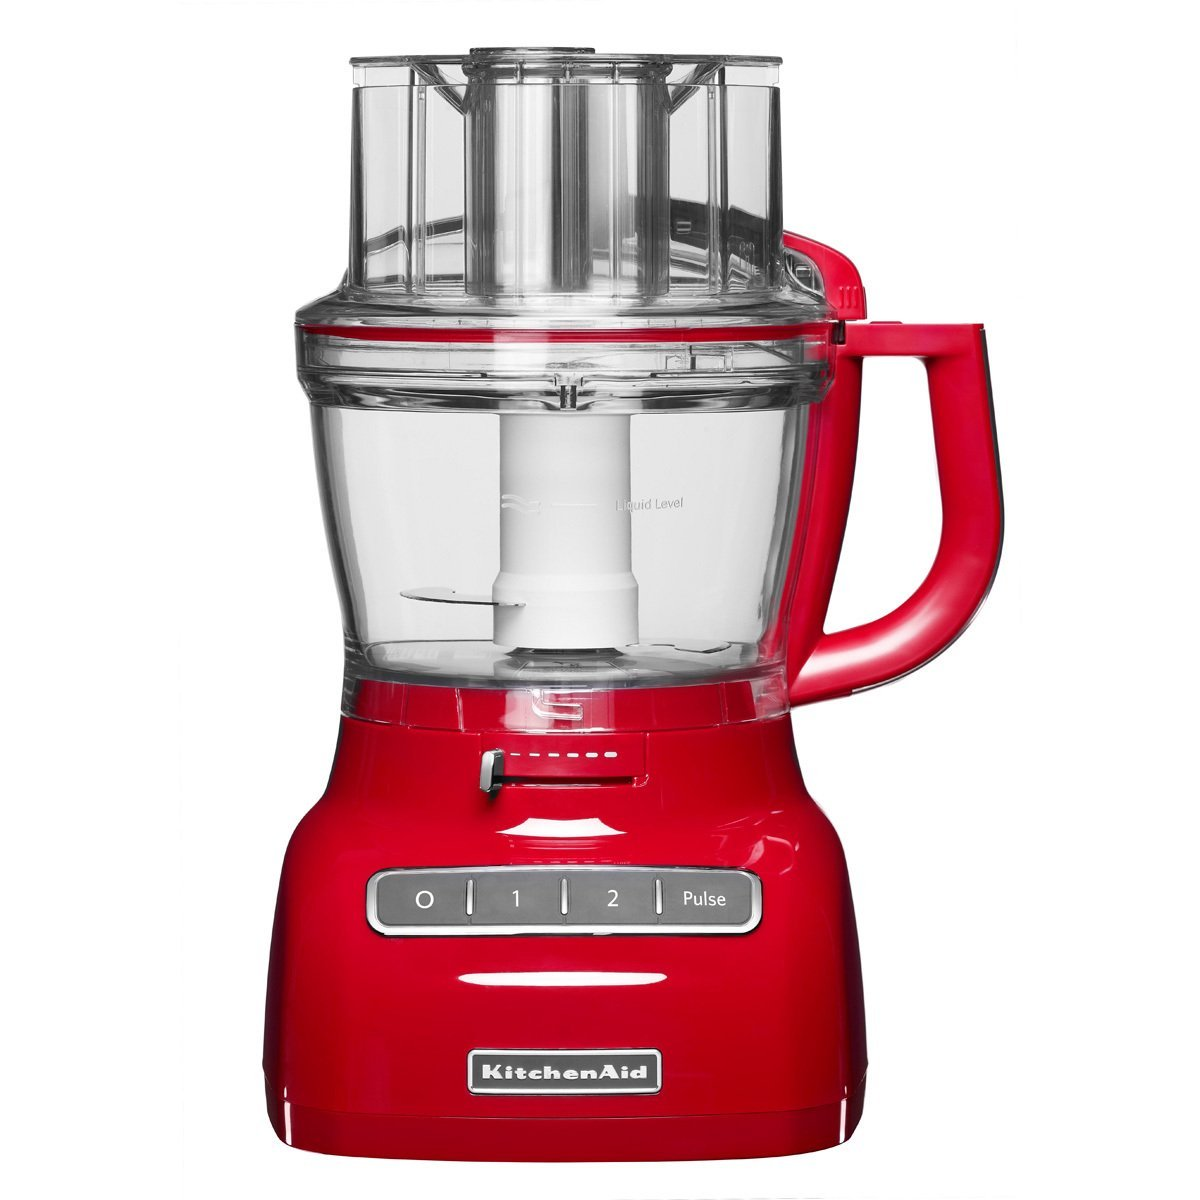 Kitchenaid food processor 5kfp1335 recensione e opinioni for Kitchenaid opinioni